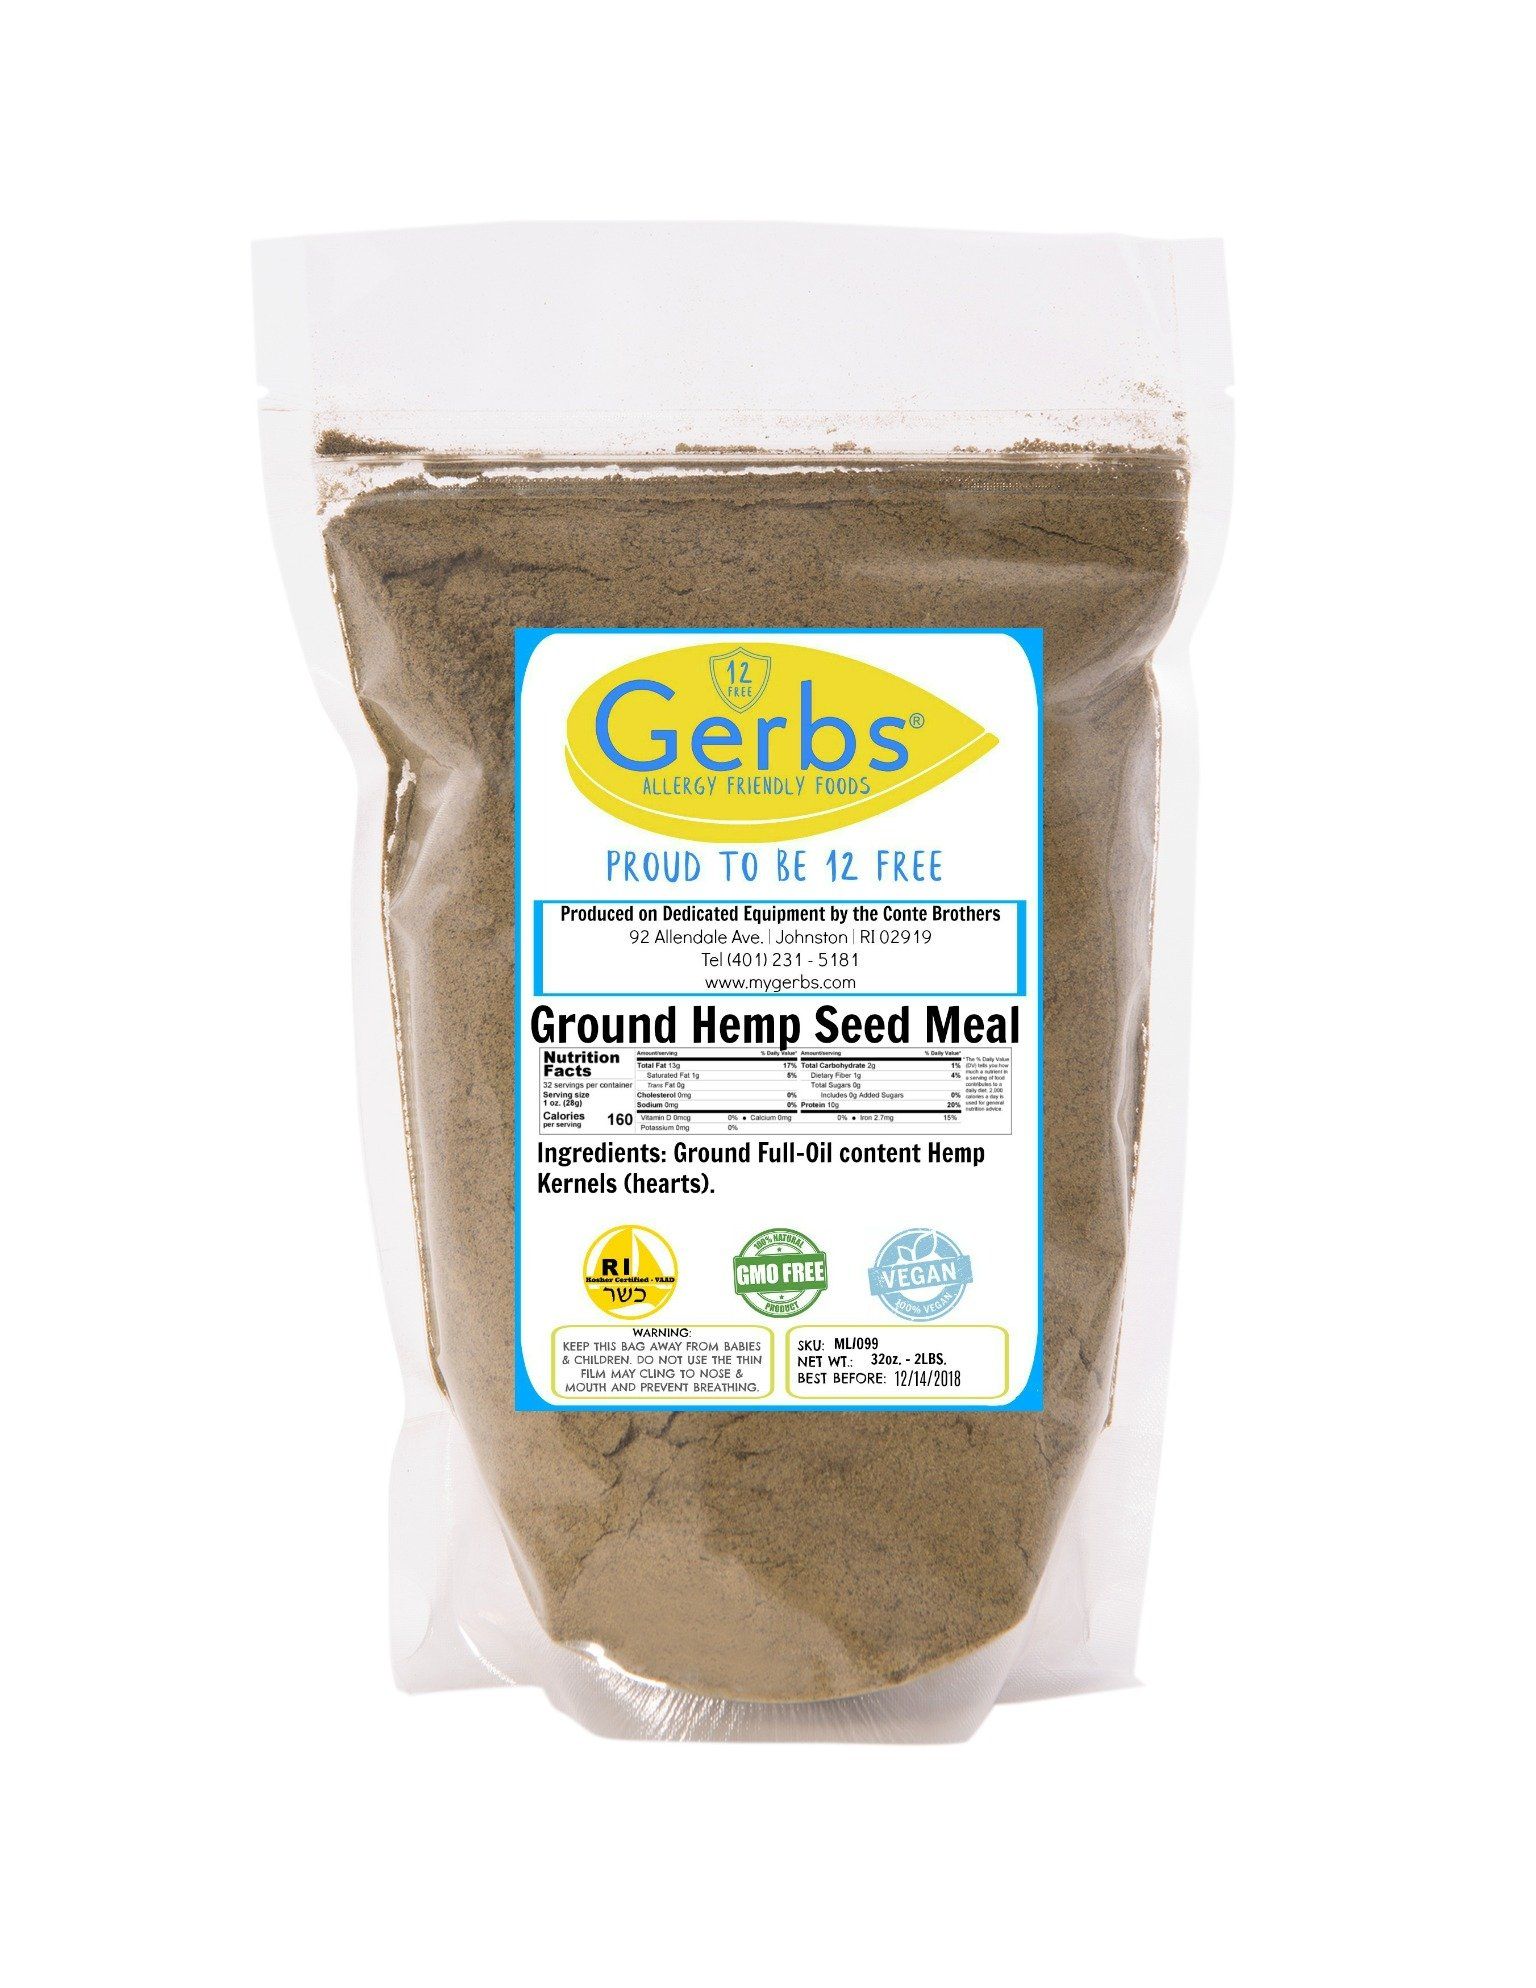 Ground Hemp Kernel Meal, 2 LBS by Gerbs - Top 12 Food Allergy Free & NON GMO - Vegan & Kosher – Premium Full Oil Content Hemp Protein Powder